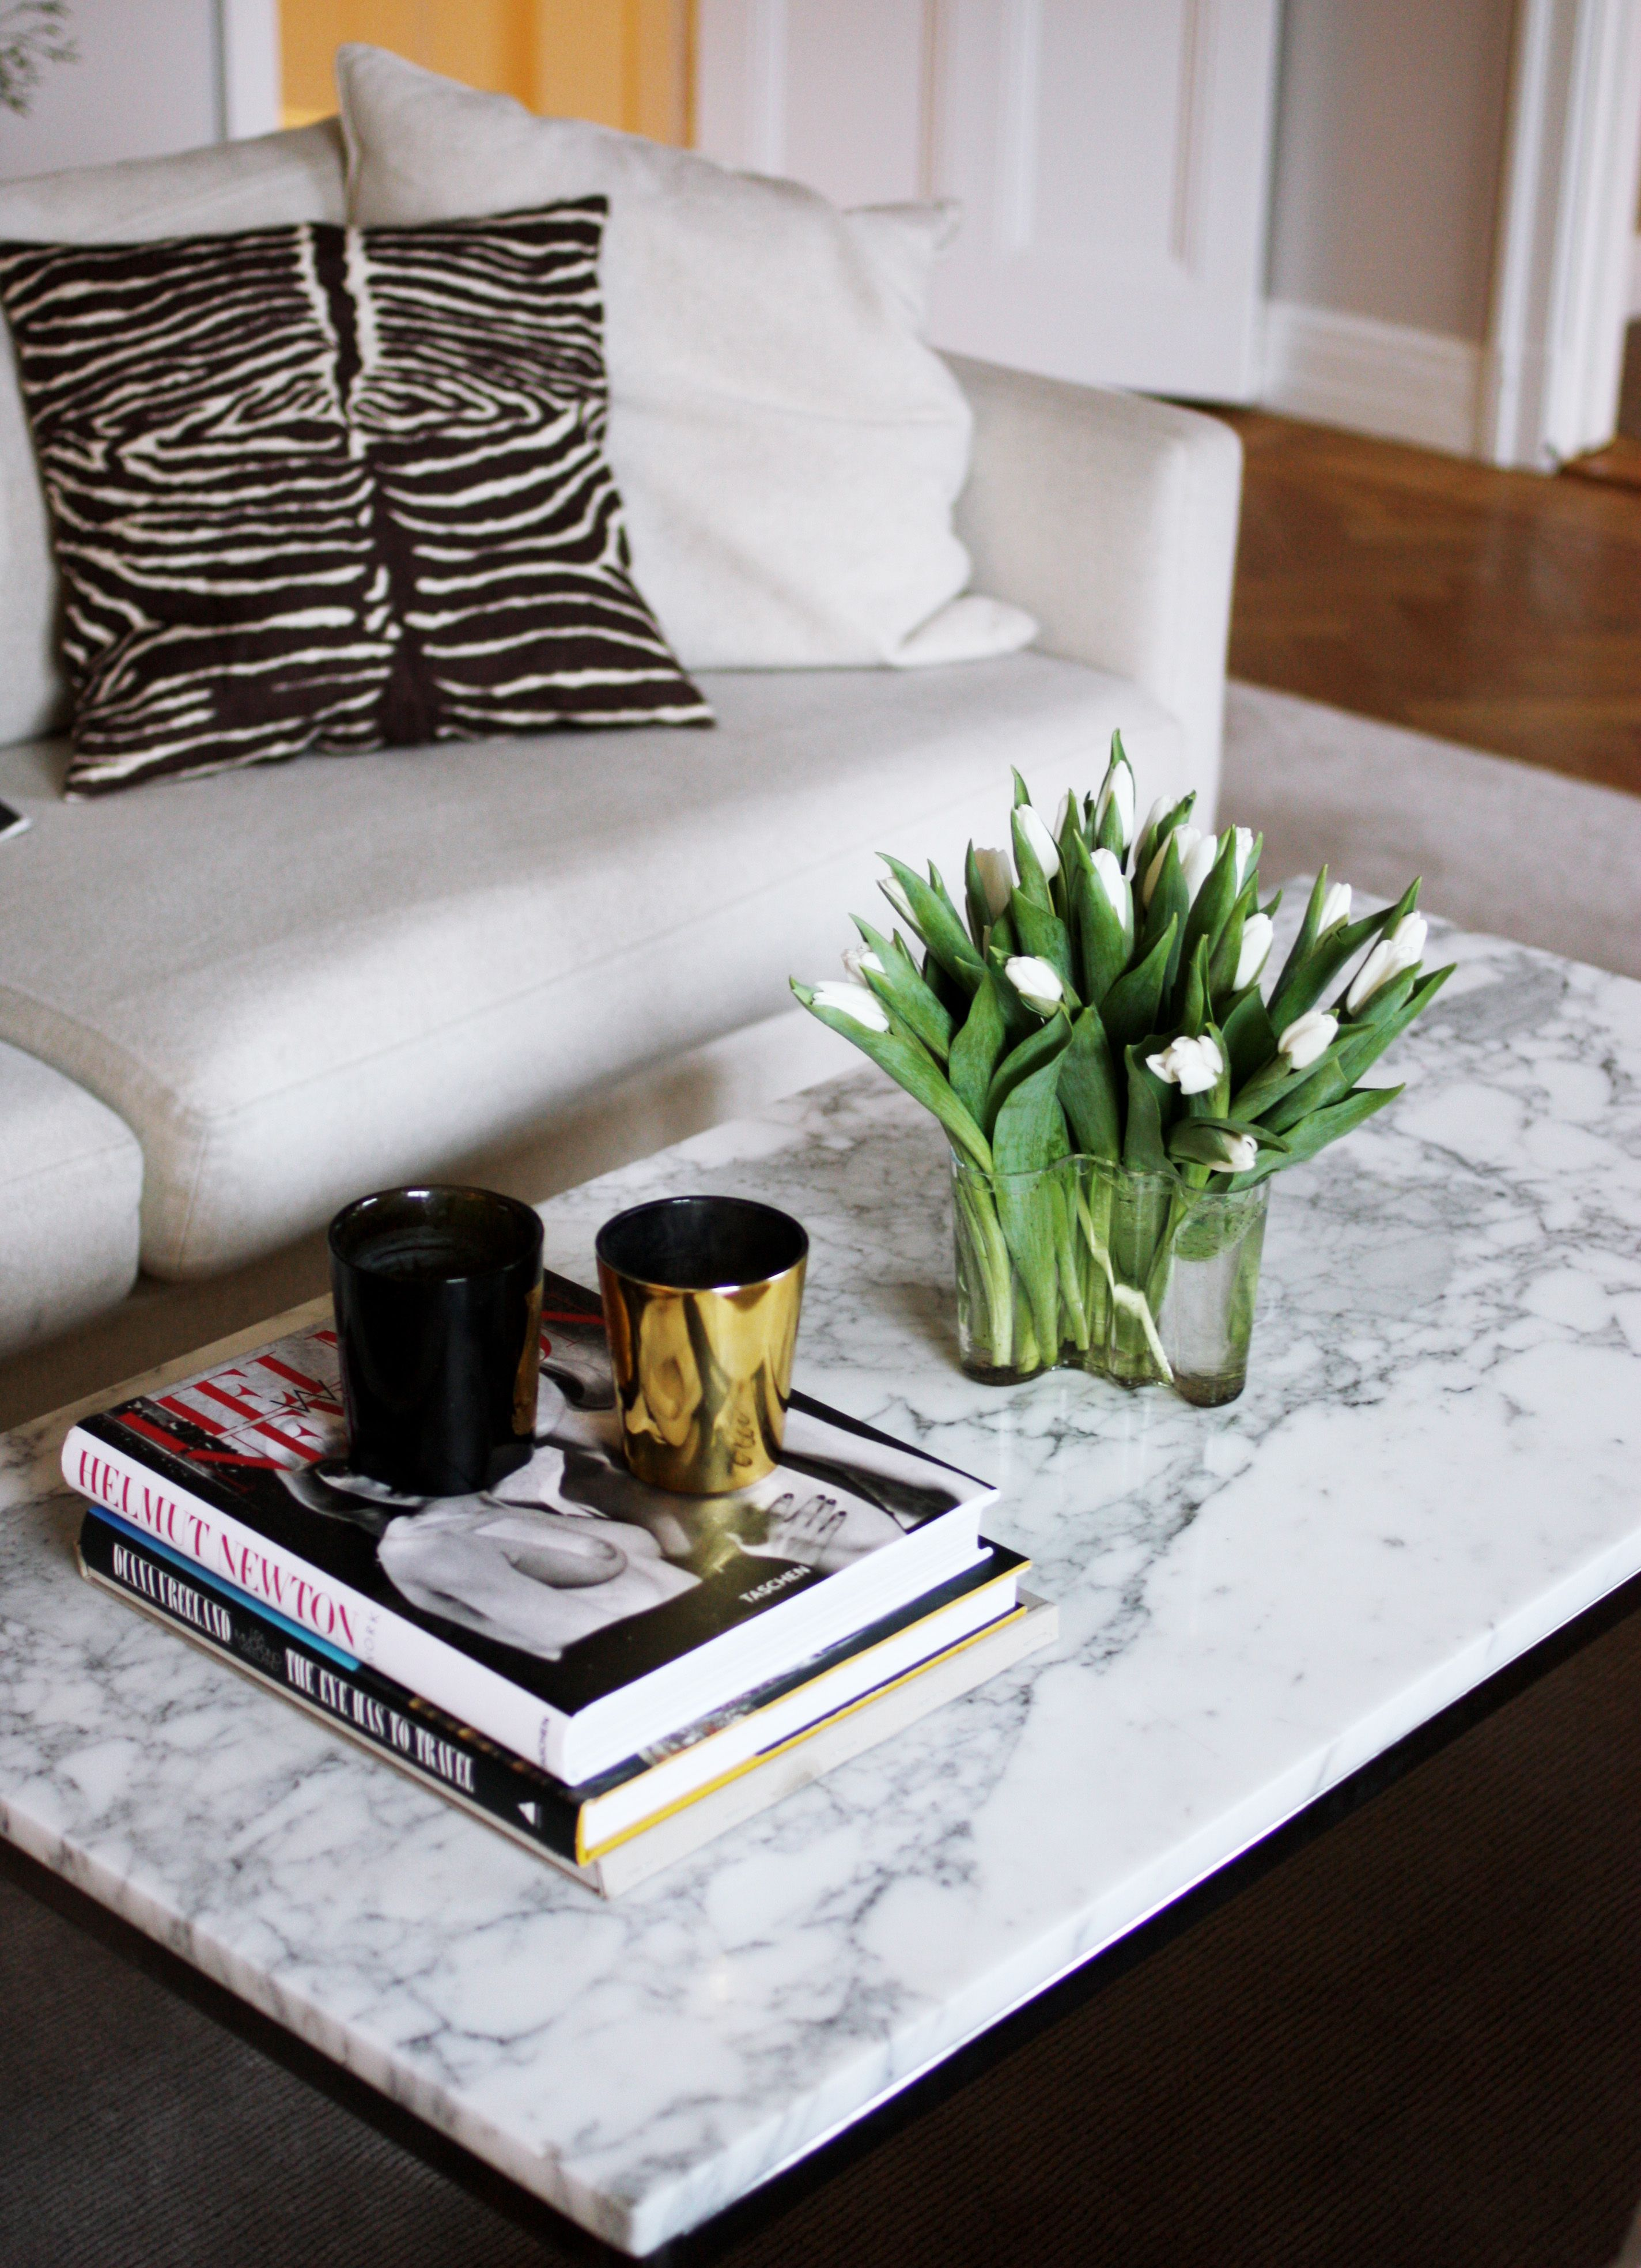 Pin By Mylifestyle On D E T A I L S Marble Top Coffee Table Modern Coffee Table Decor Decorating Coffee Tables [ 3936 x 2848 Pixel ]